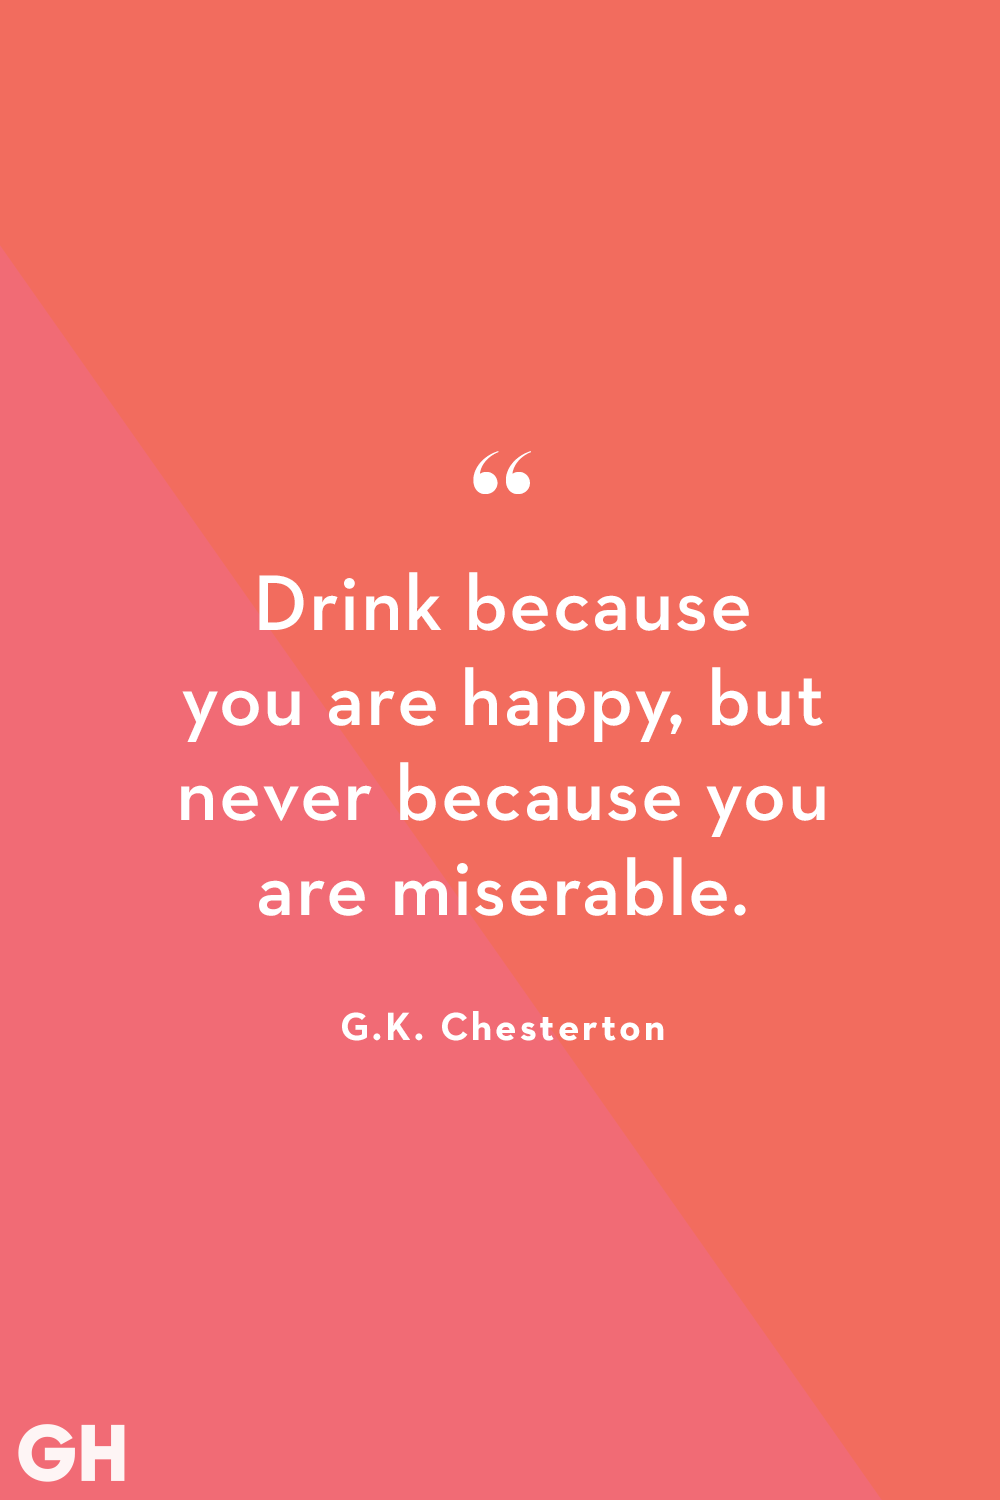 13 Alcohol Quotes , Best Quotes About Alcohol for